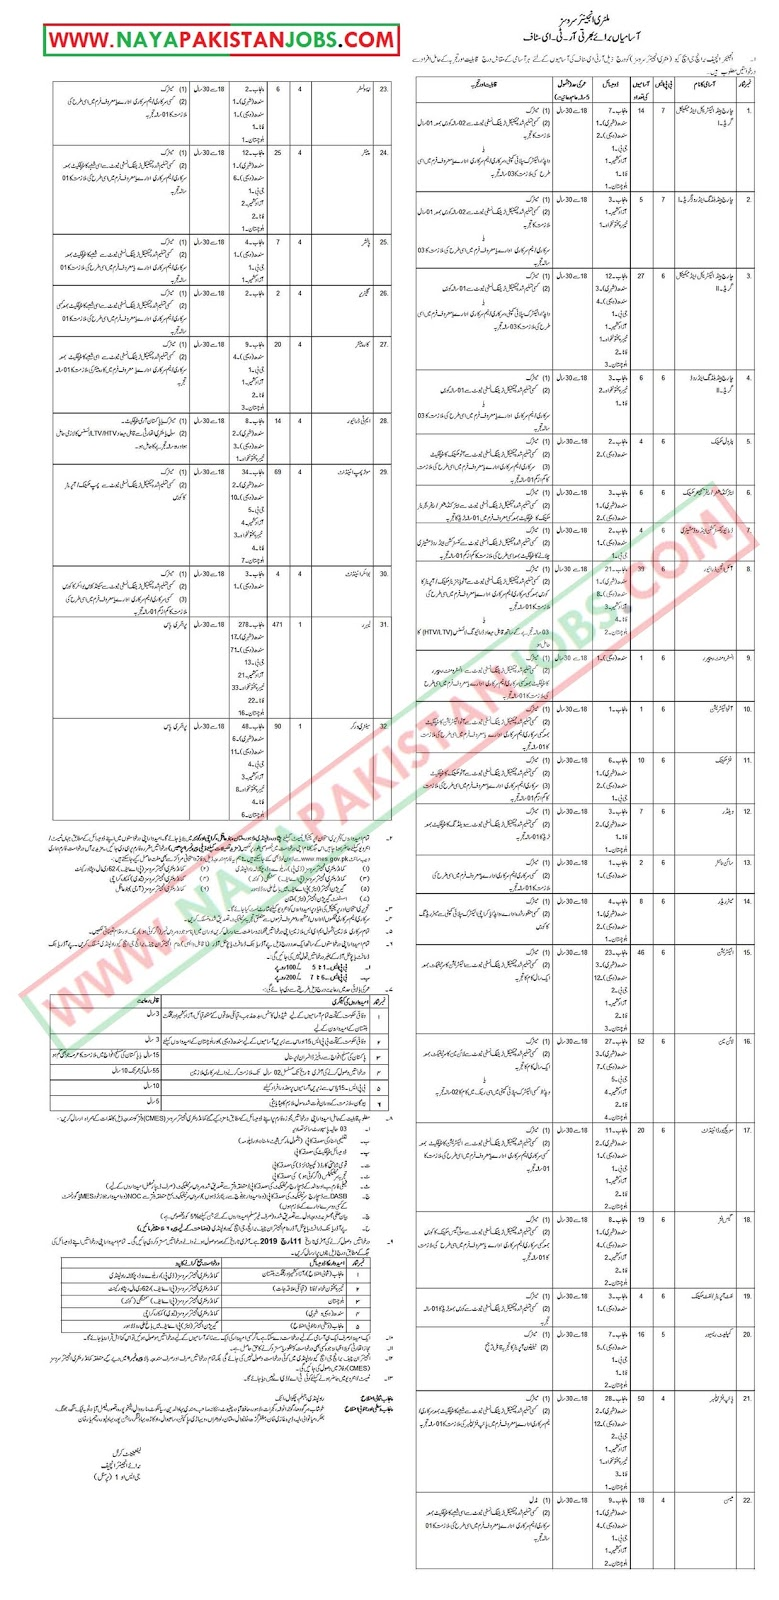 Jobs in Military Engineer Services Pakistan, Military Engineer Services Pakistan Jobs 2019 Feb | 1067 Vacancies